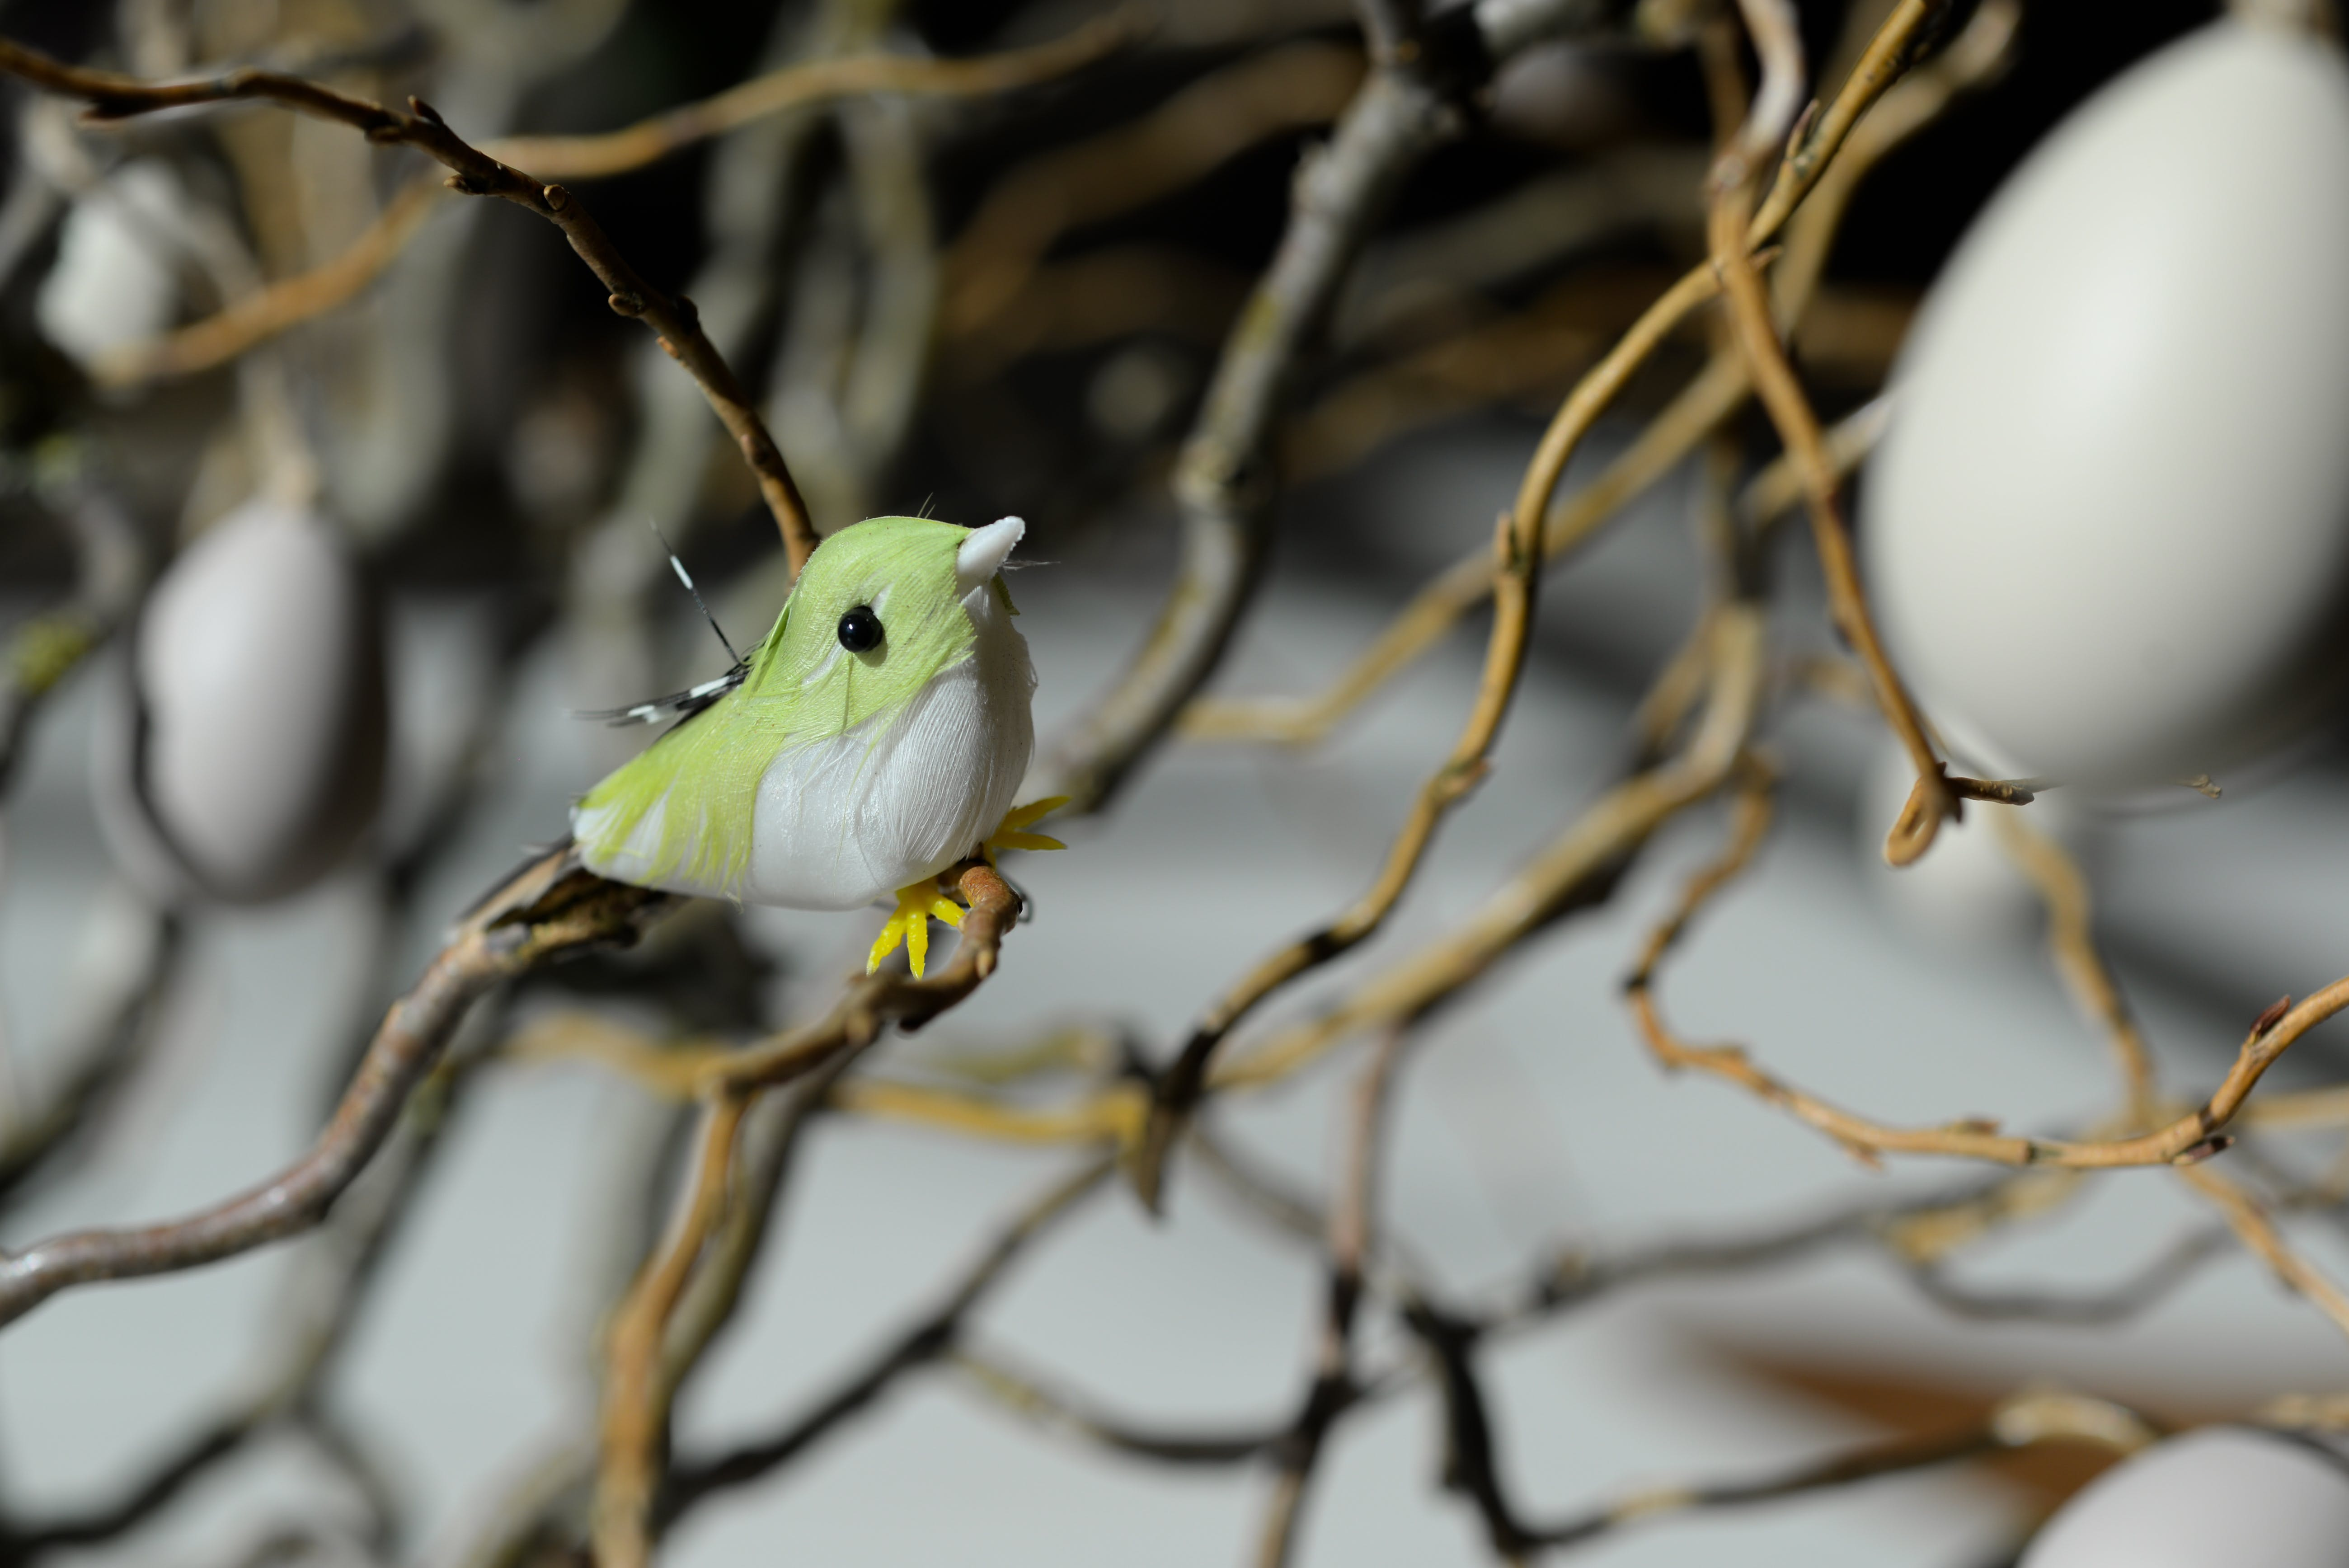 Green and White Bird Toy Perched on Tree Branch at Daytime